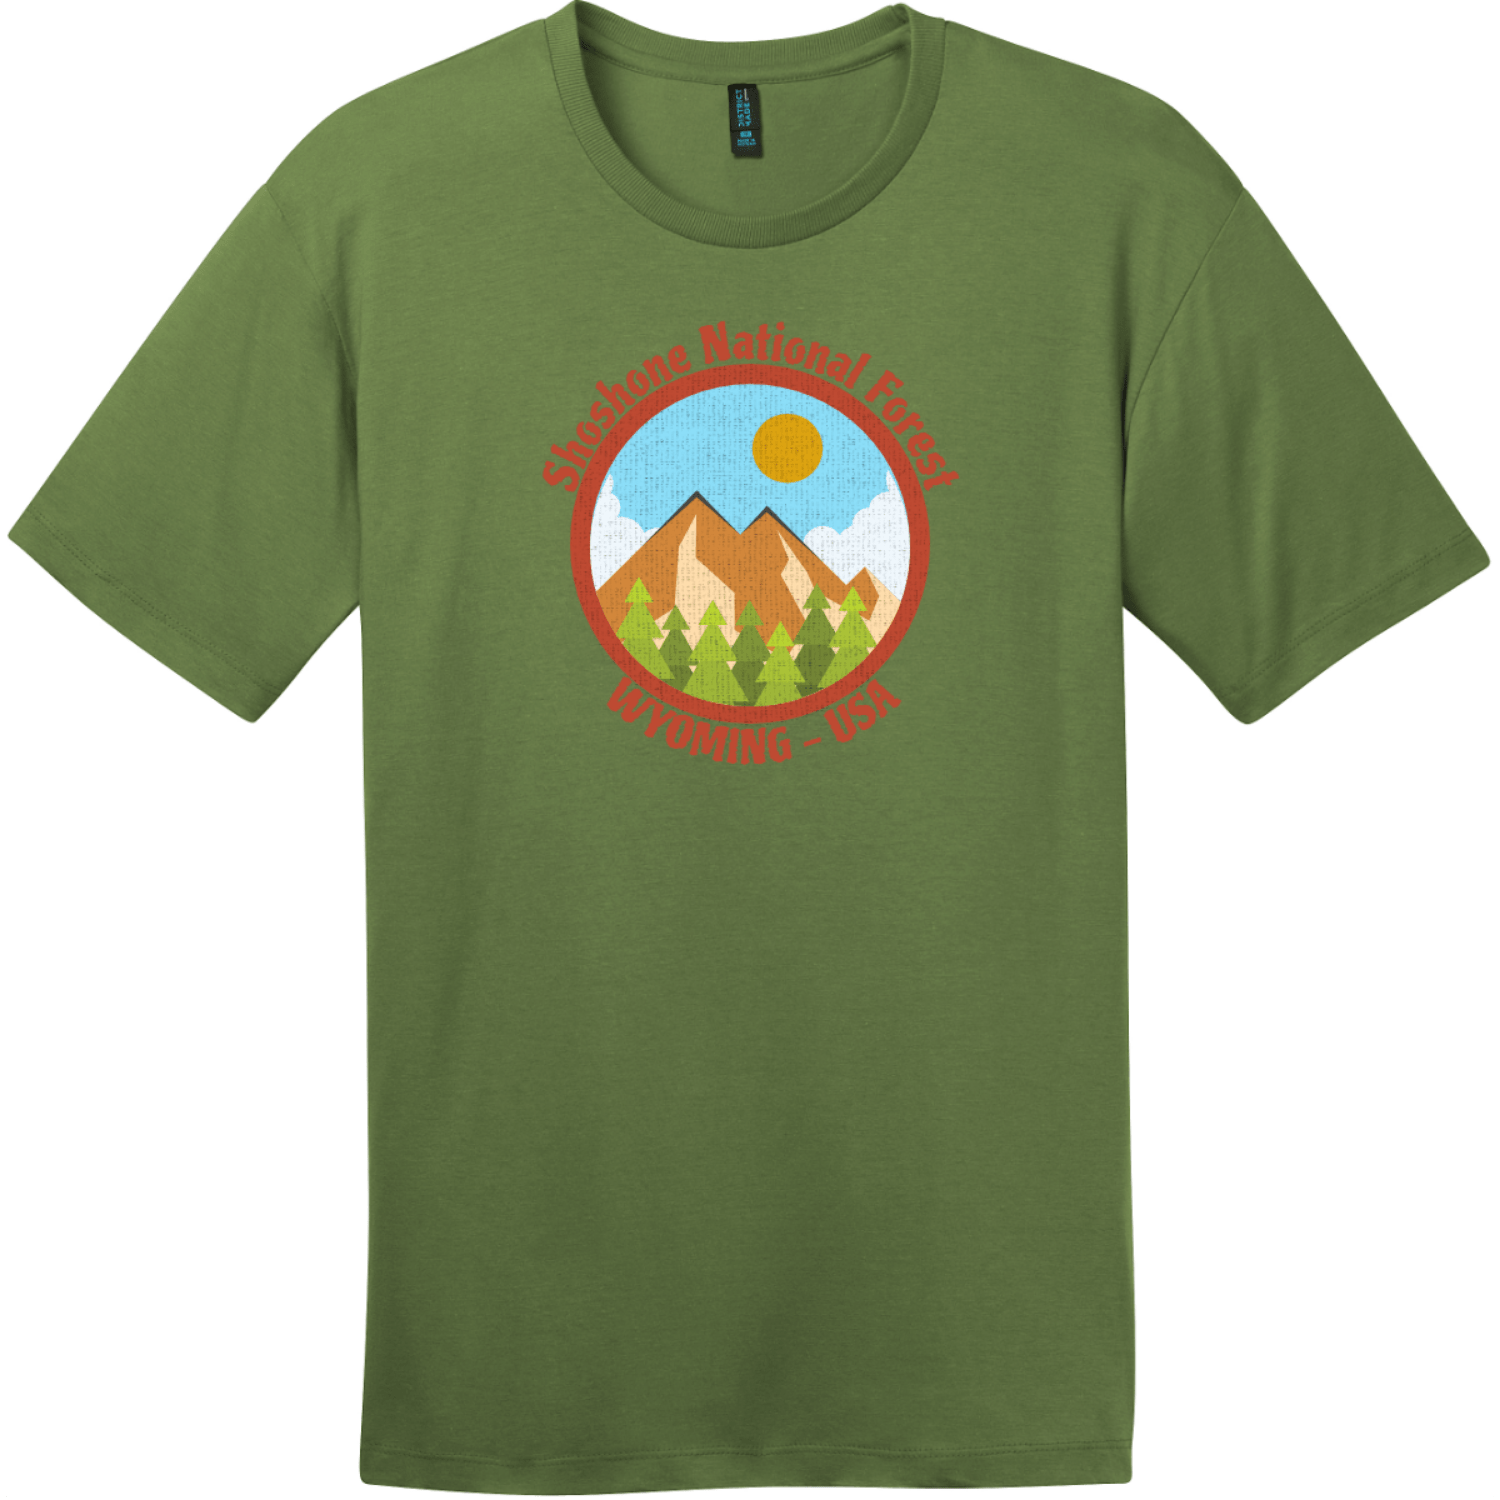 Shoshone National Forest Wyoming T-Shirt Fresh Fatigue District Perfect Weight Tee DT104